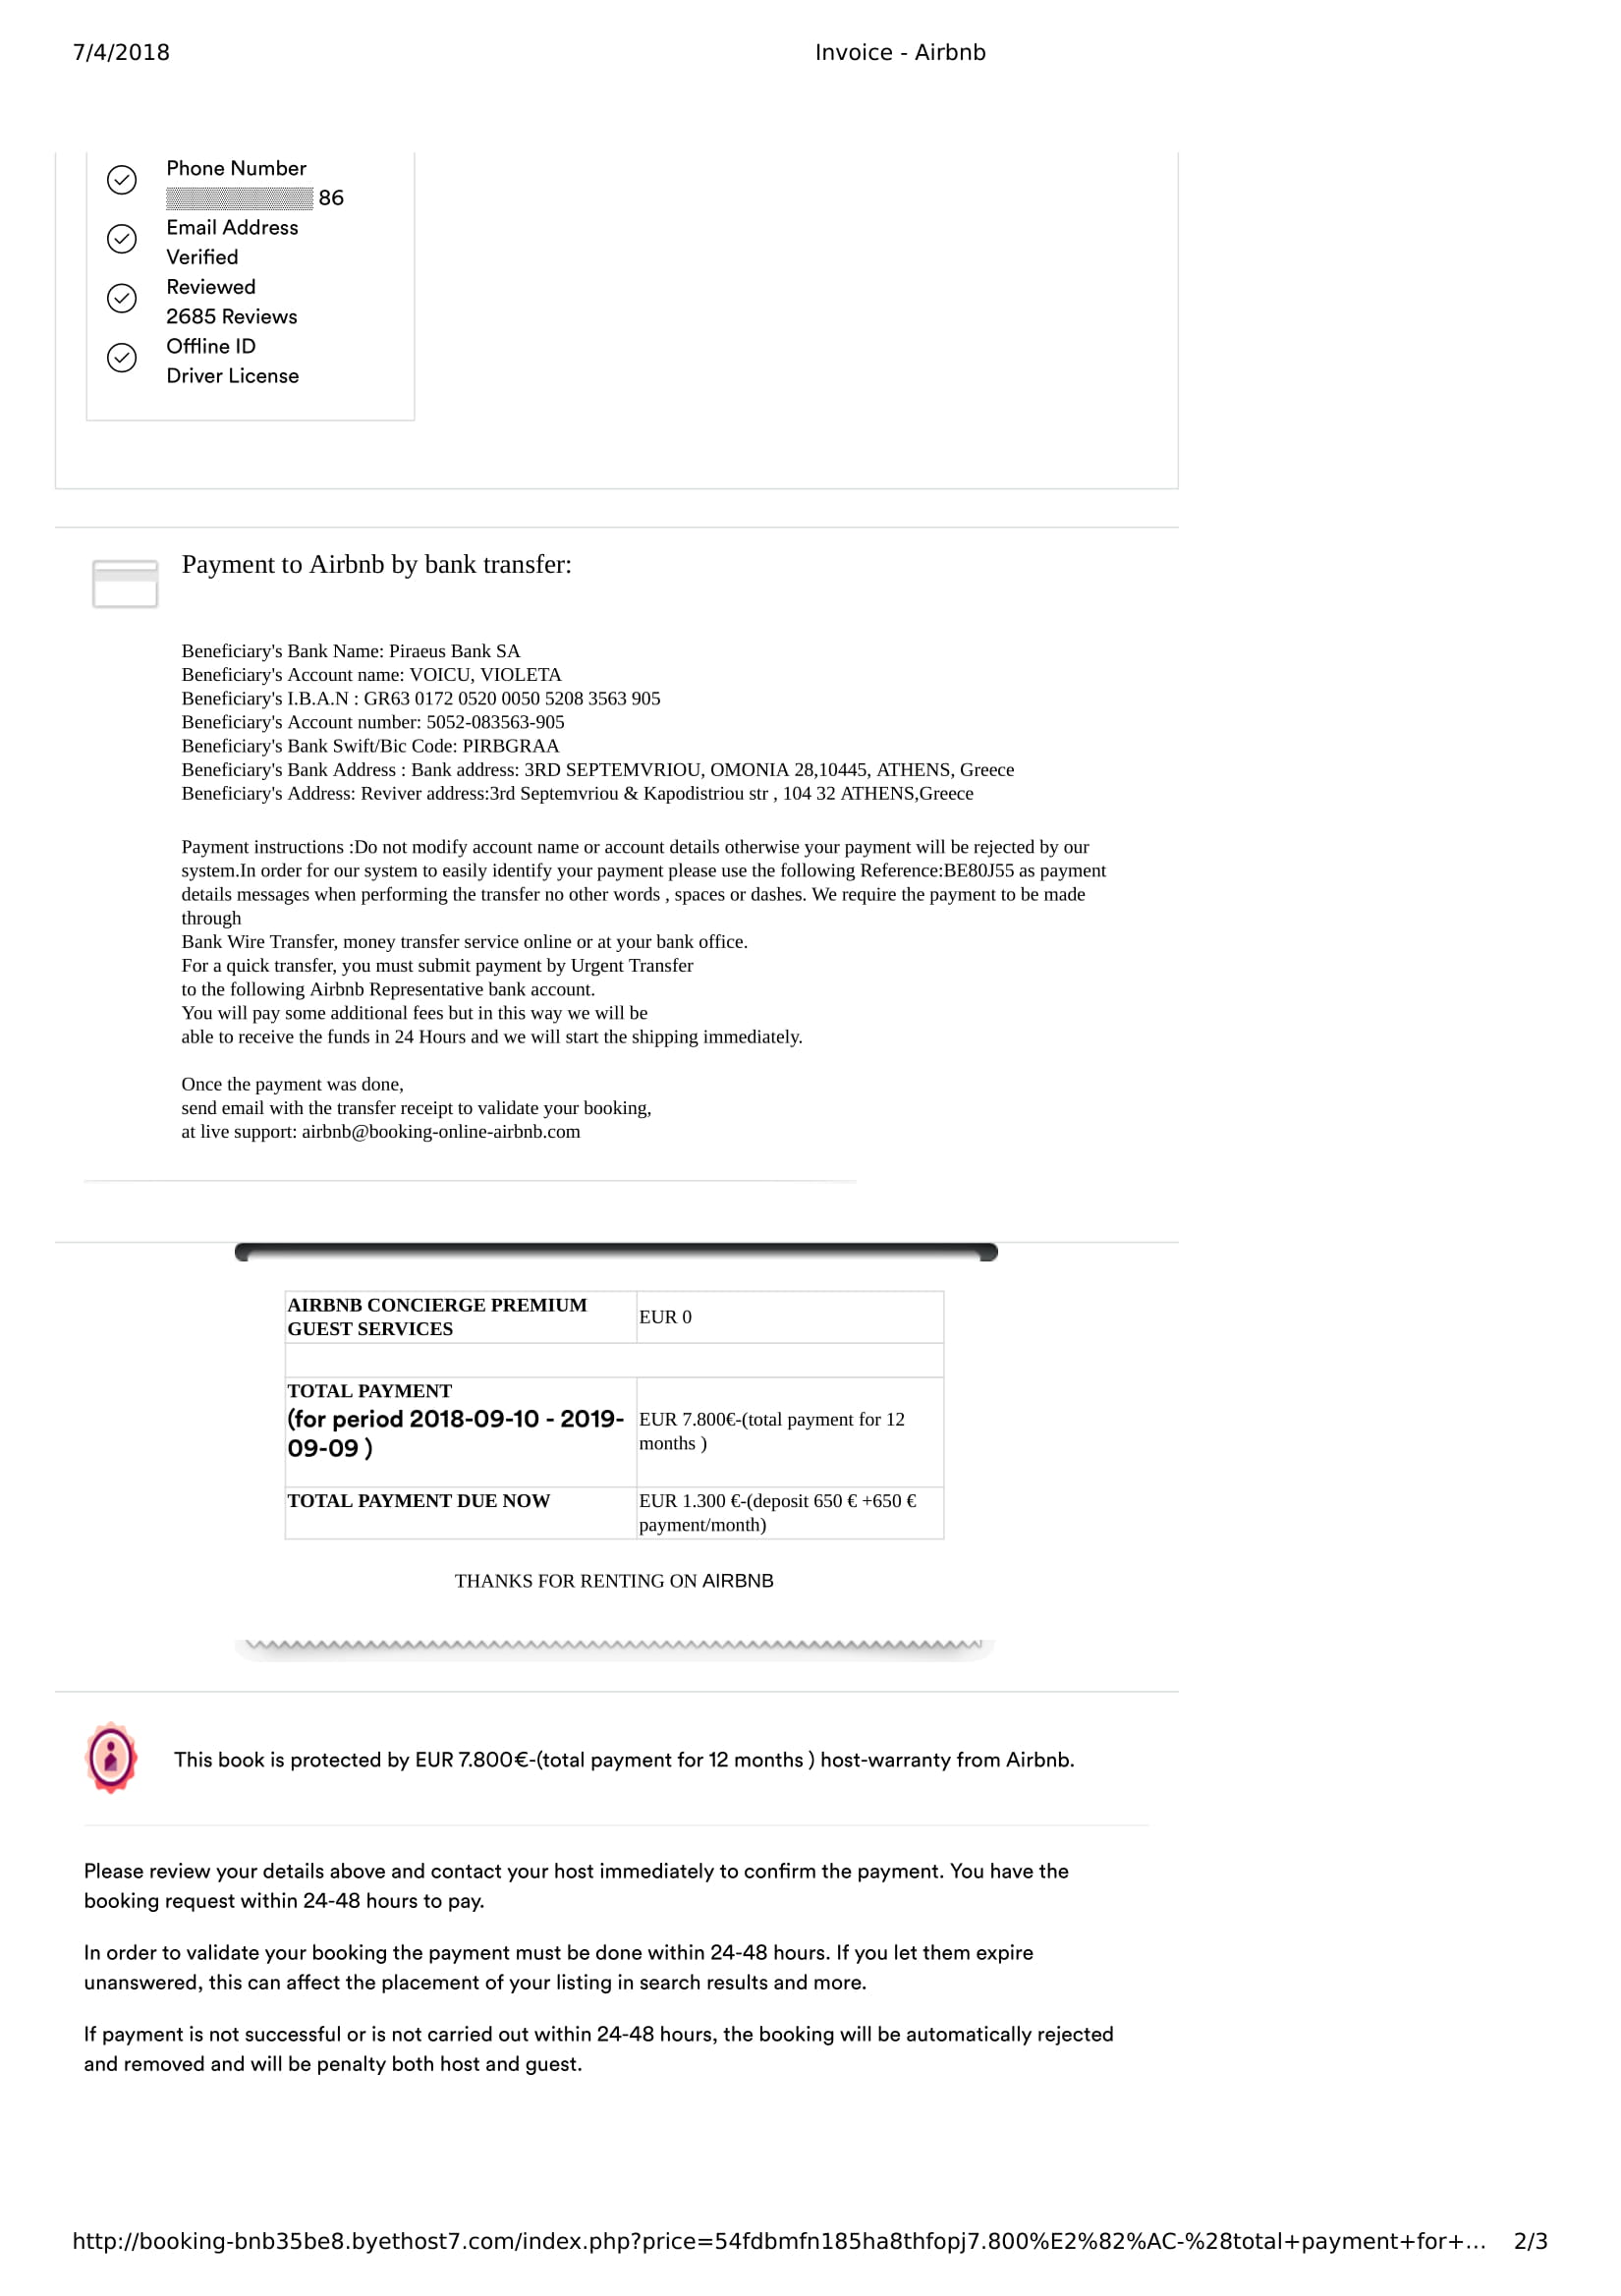 Rental Scam Using Airbnb How Should I Go Forward Page 7